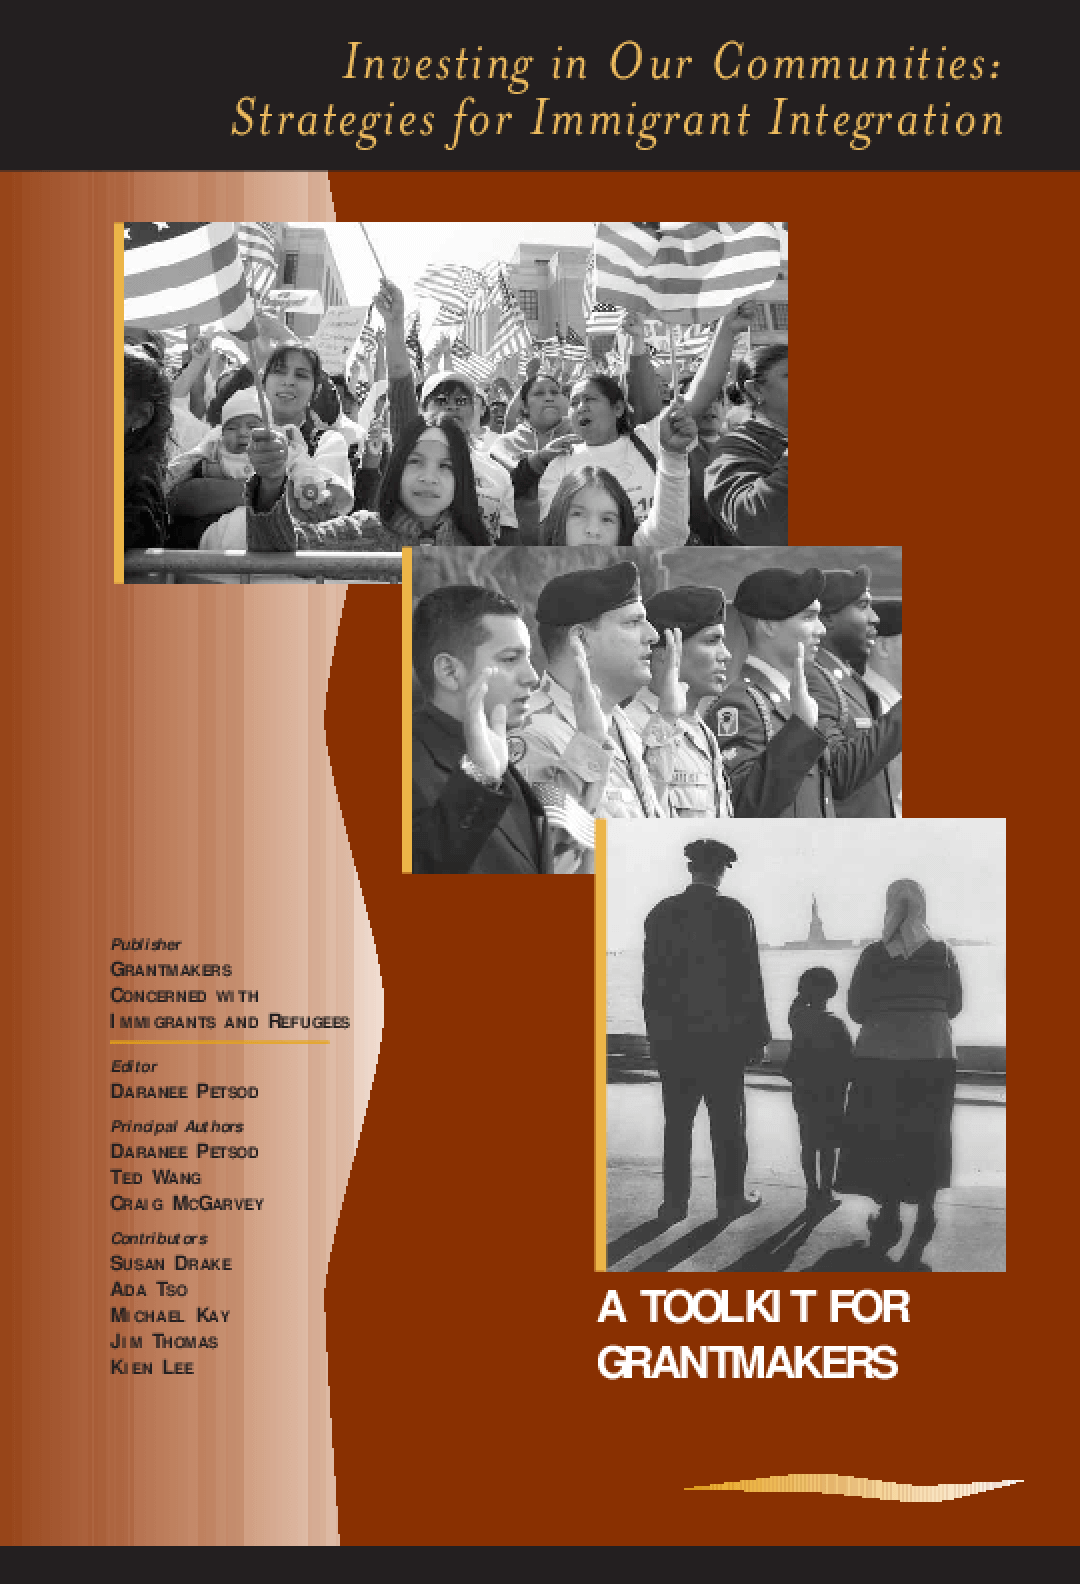 Investing in Our Communities: Strategies for Immigrant Integration